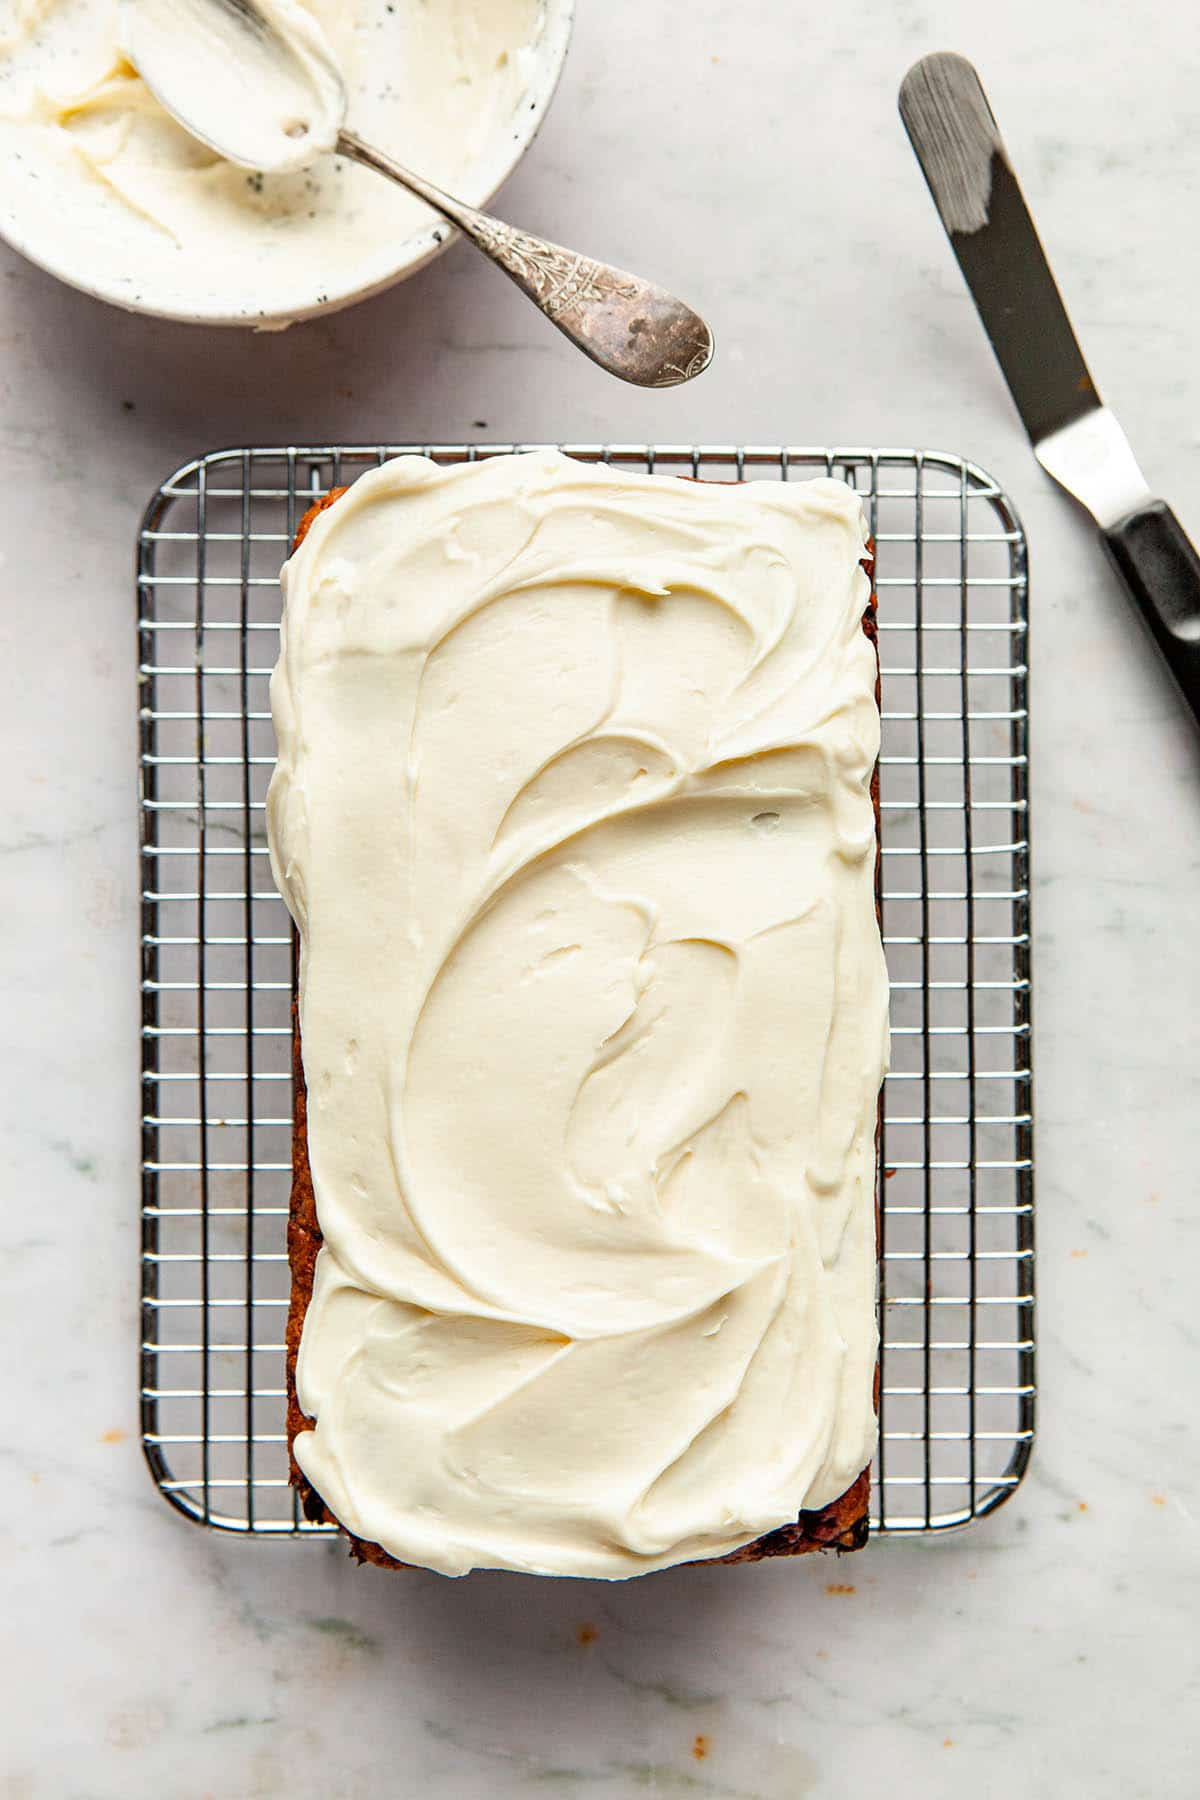 A baked loaf cake topped with swirls of whipped cream cheese frosting.